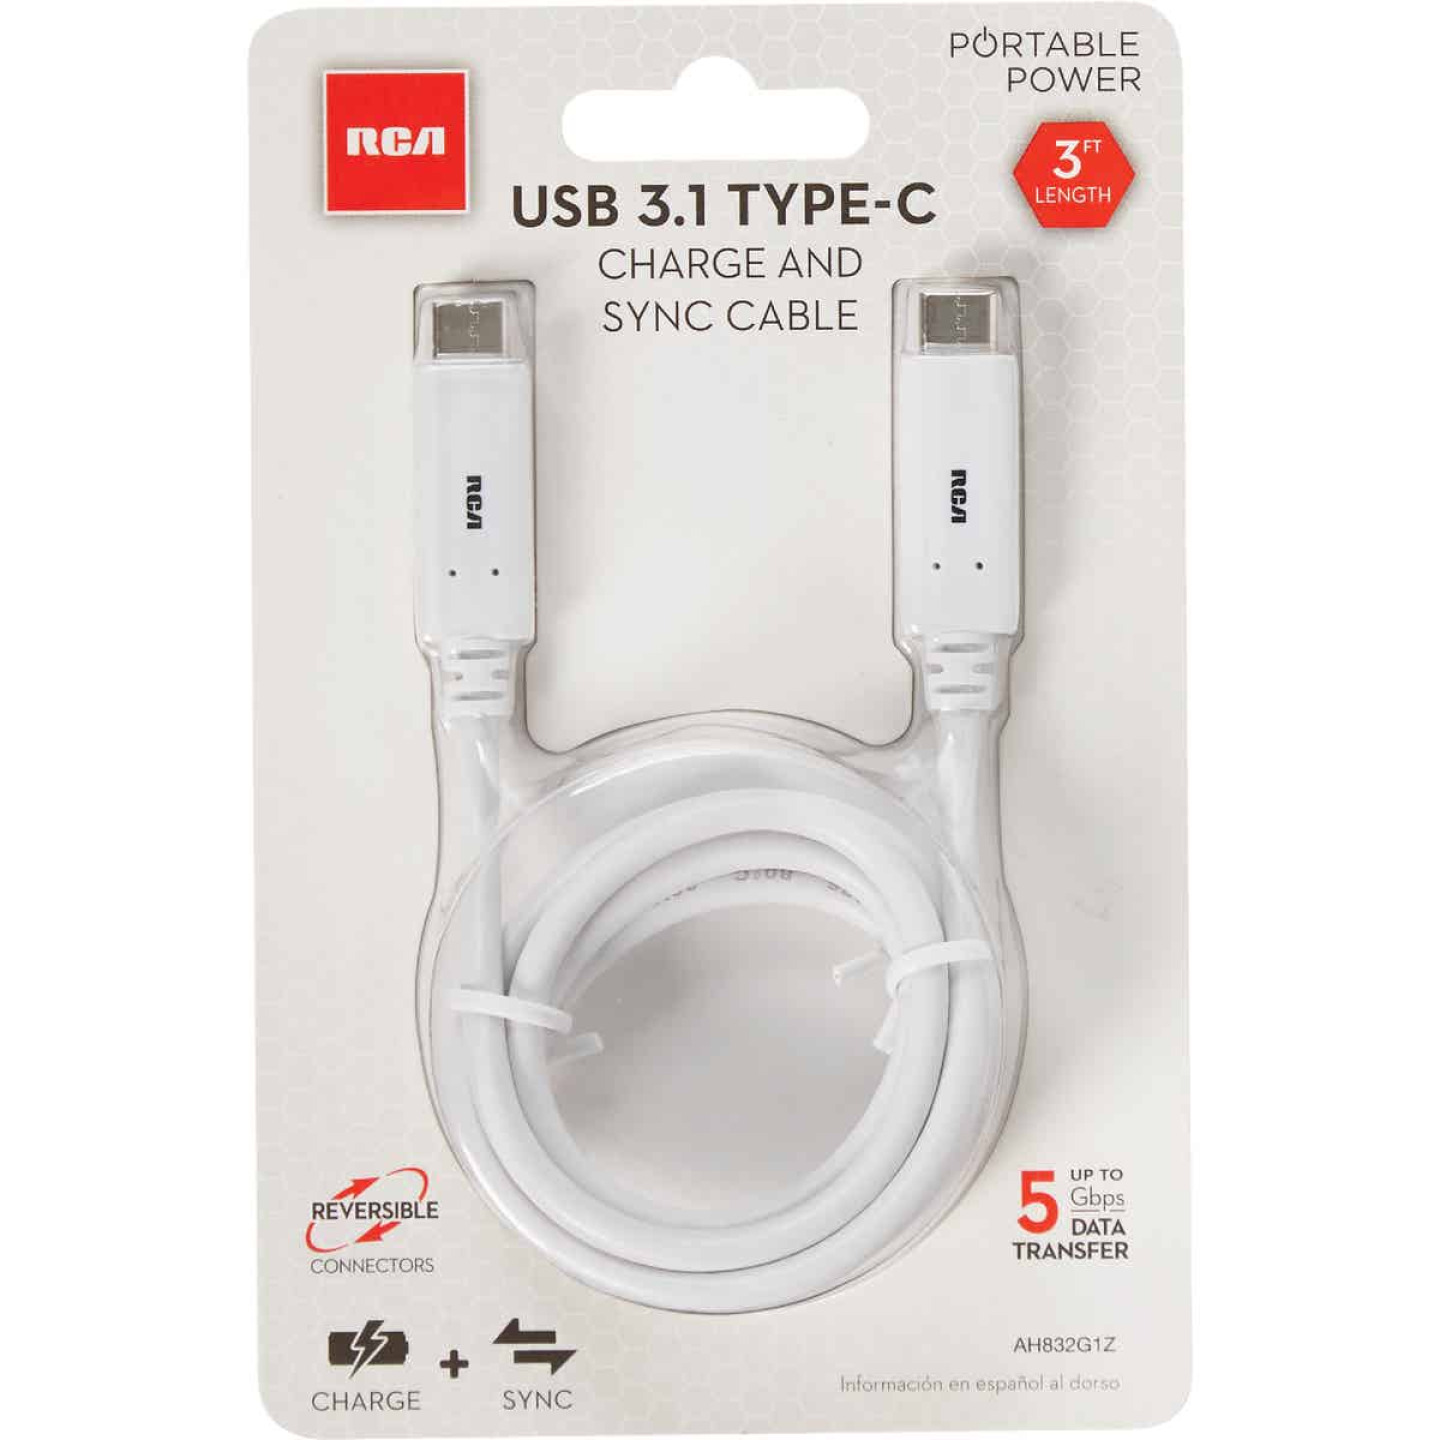 RCA 3Ft. WhiteType-C USB Charging & Sync Cable Image 2